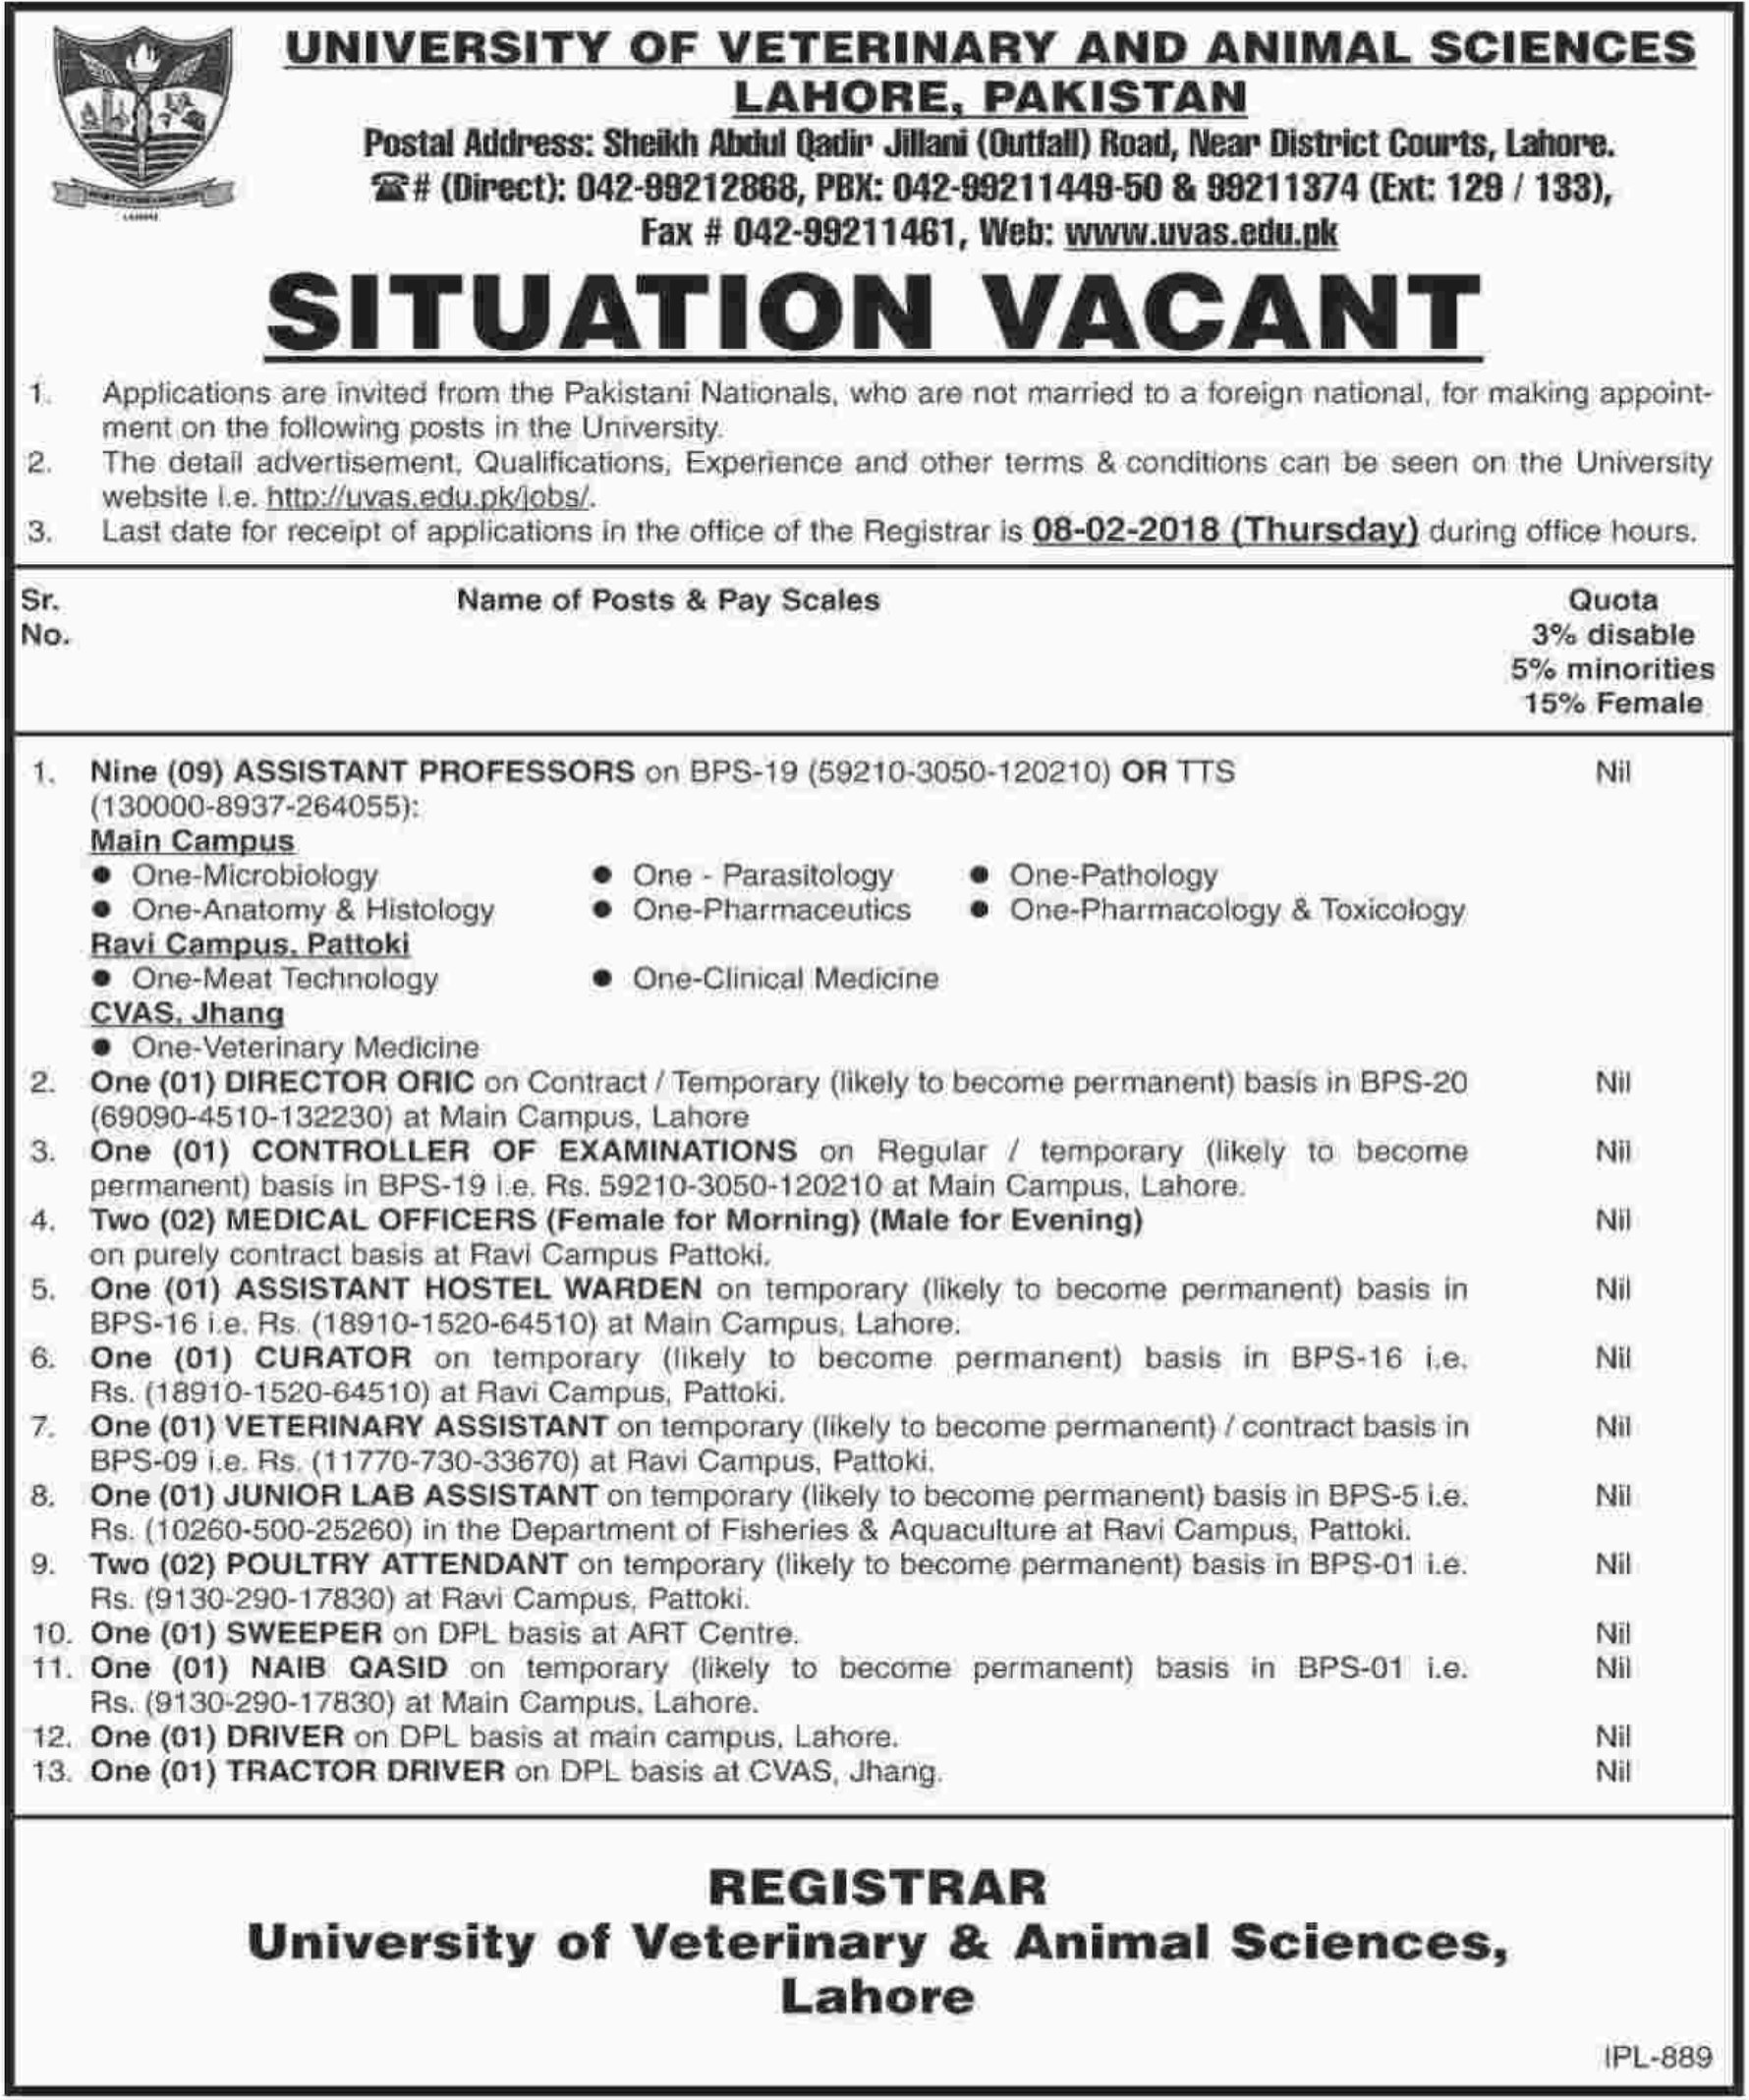 University of Veterinary & Animal Sciences UVAS Latest Jobs